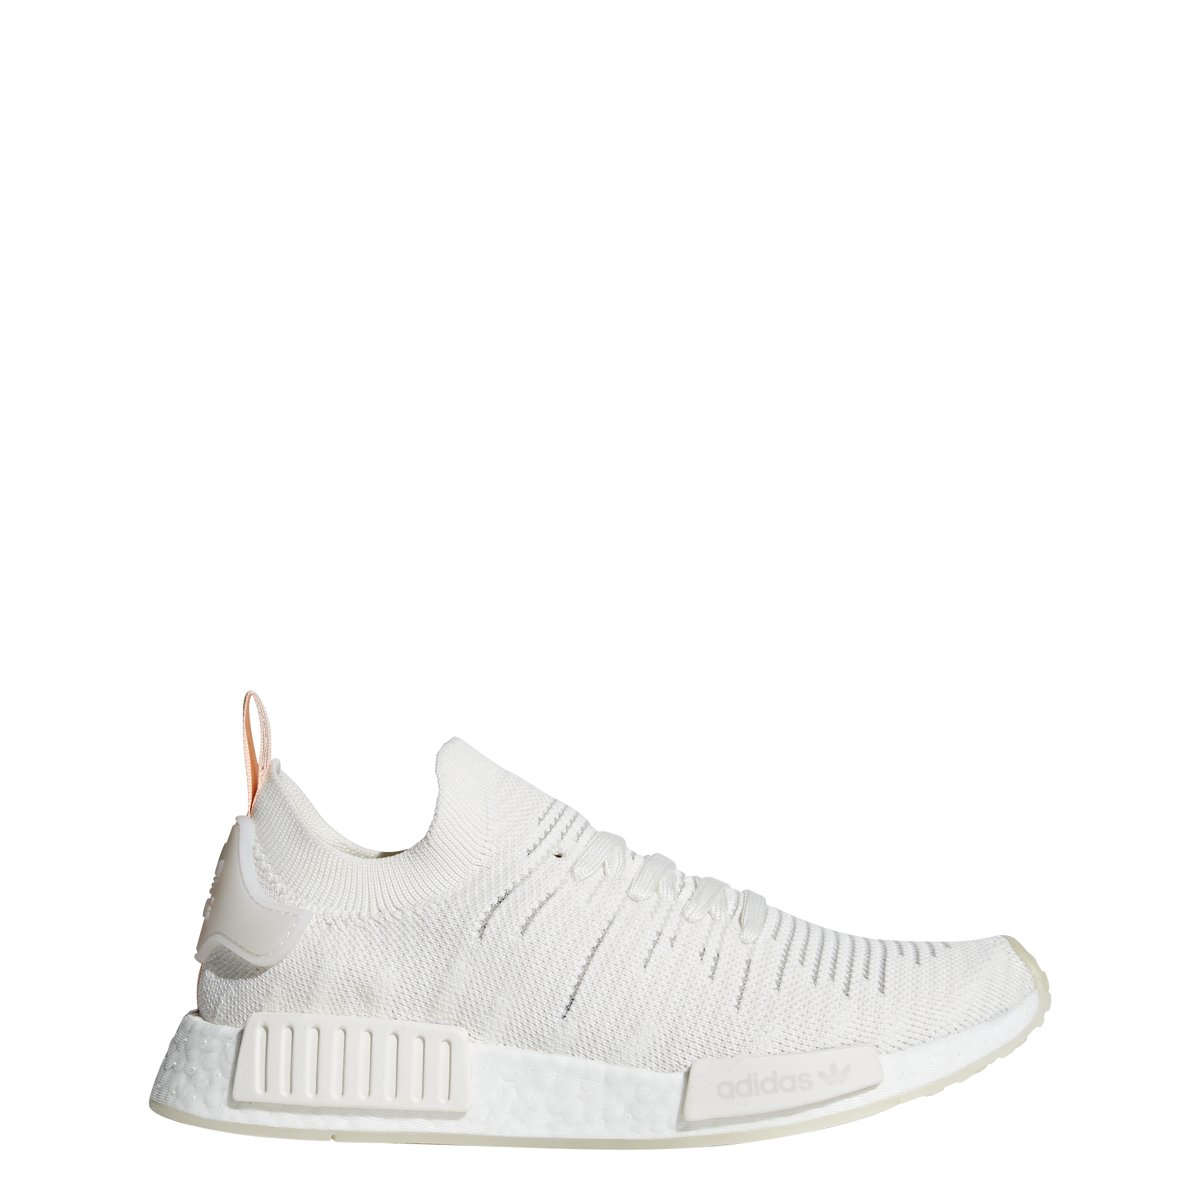 874e1daecf119 adidas NMD R1 - BY3016  Amazon.co.uk  Shoes   Bags